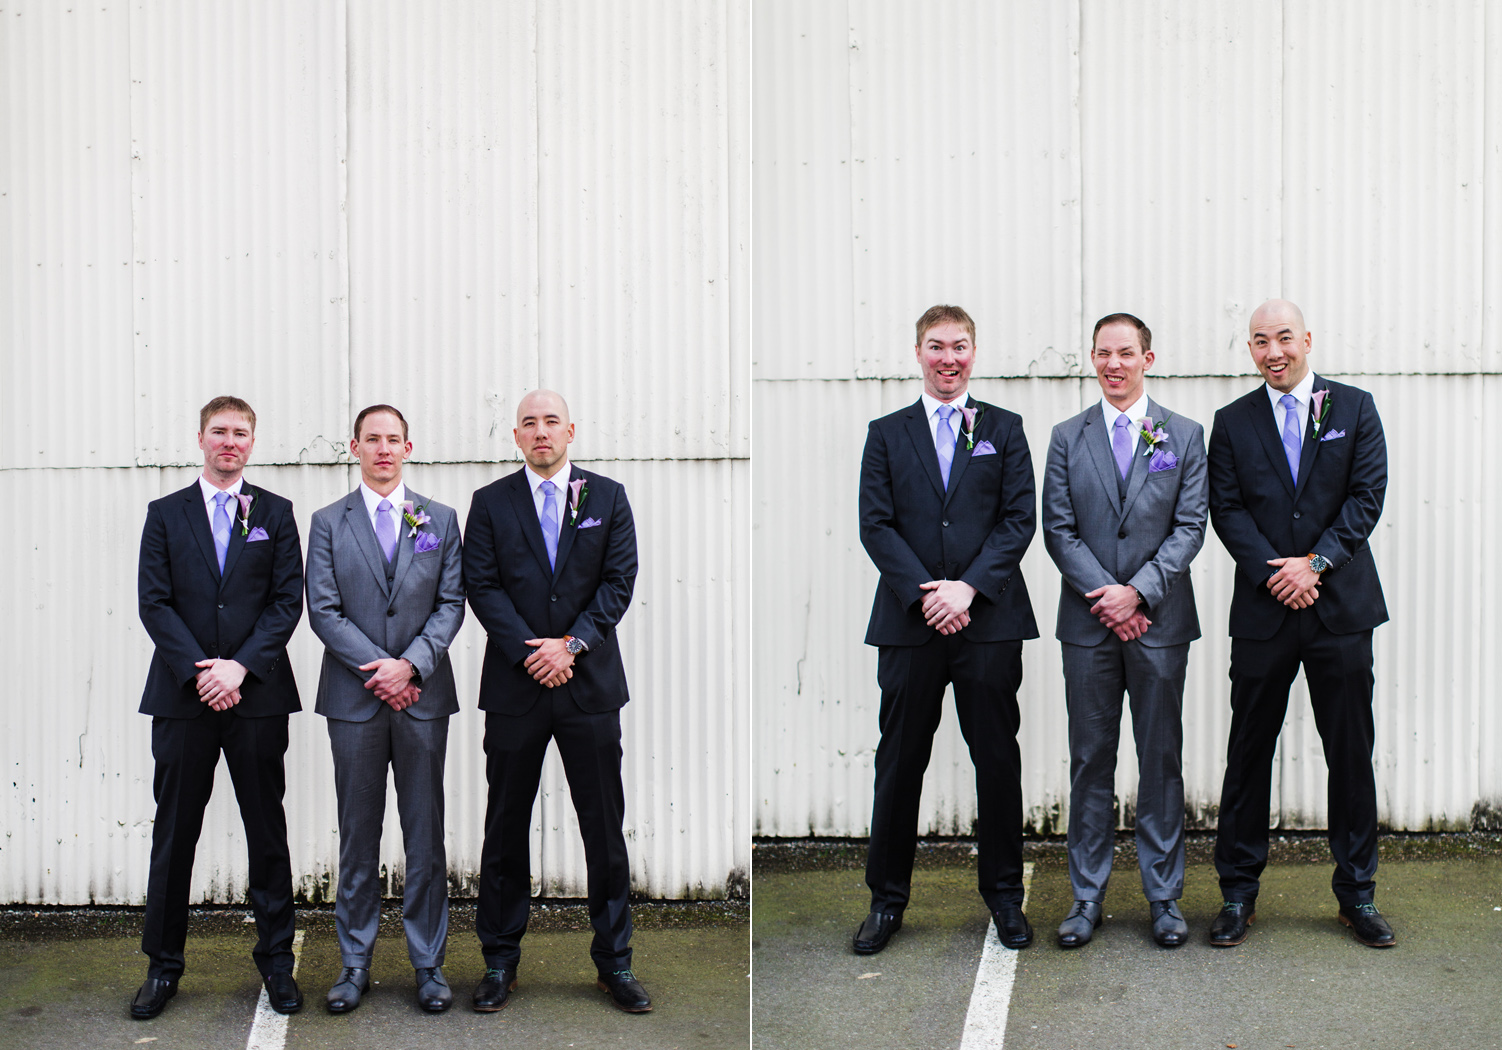 seattle bridal party groomsmen style wedding photography.jpg